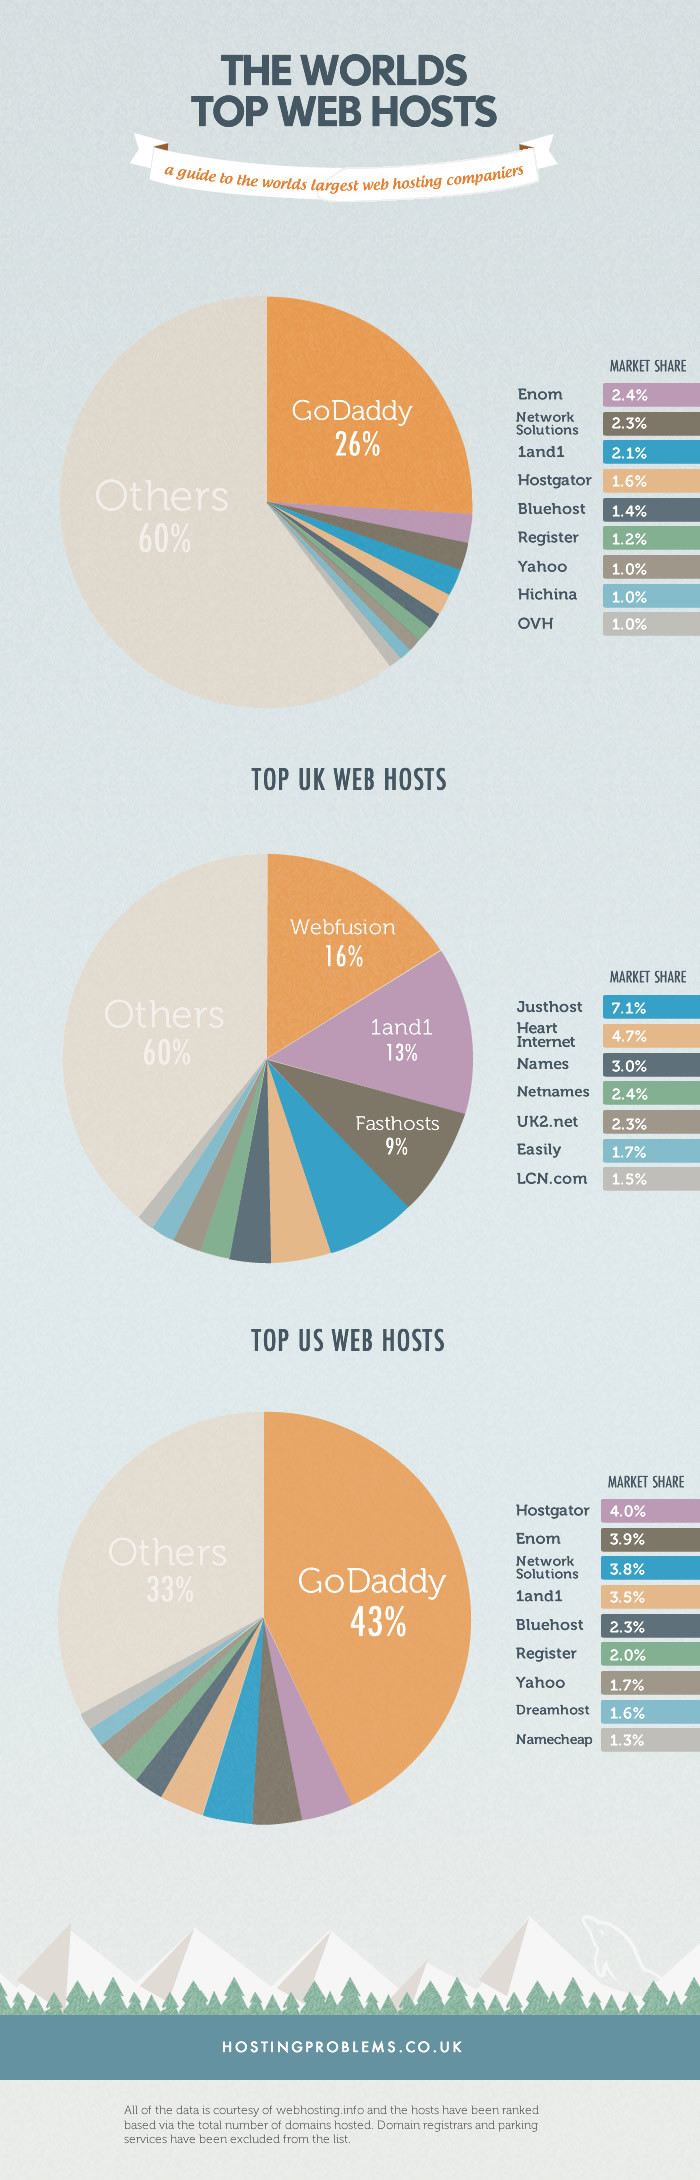 The Worlds Largest Web Hosts